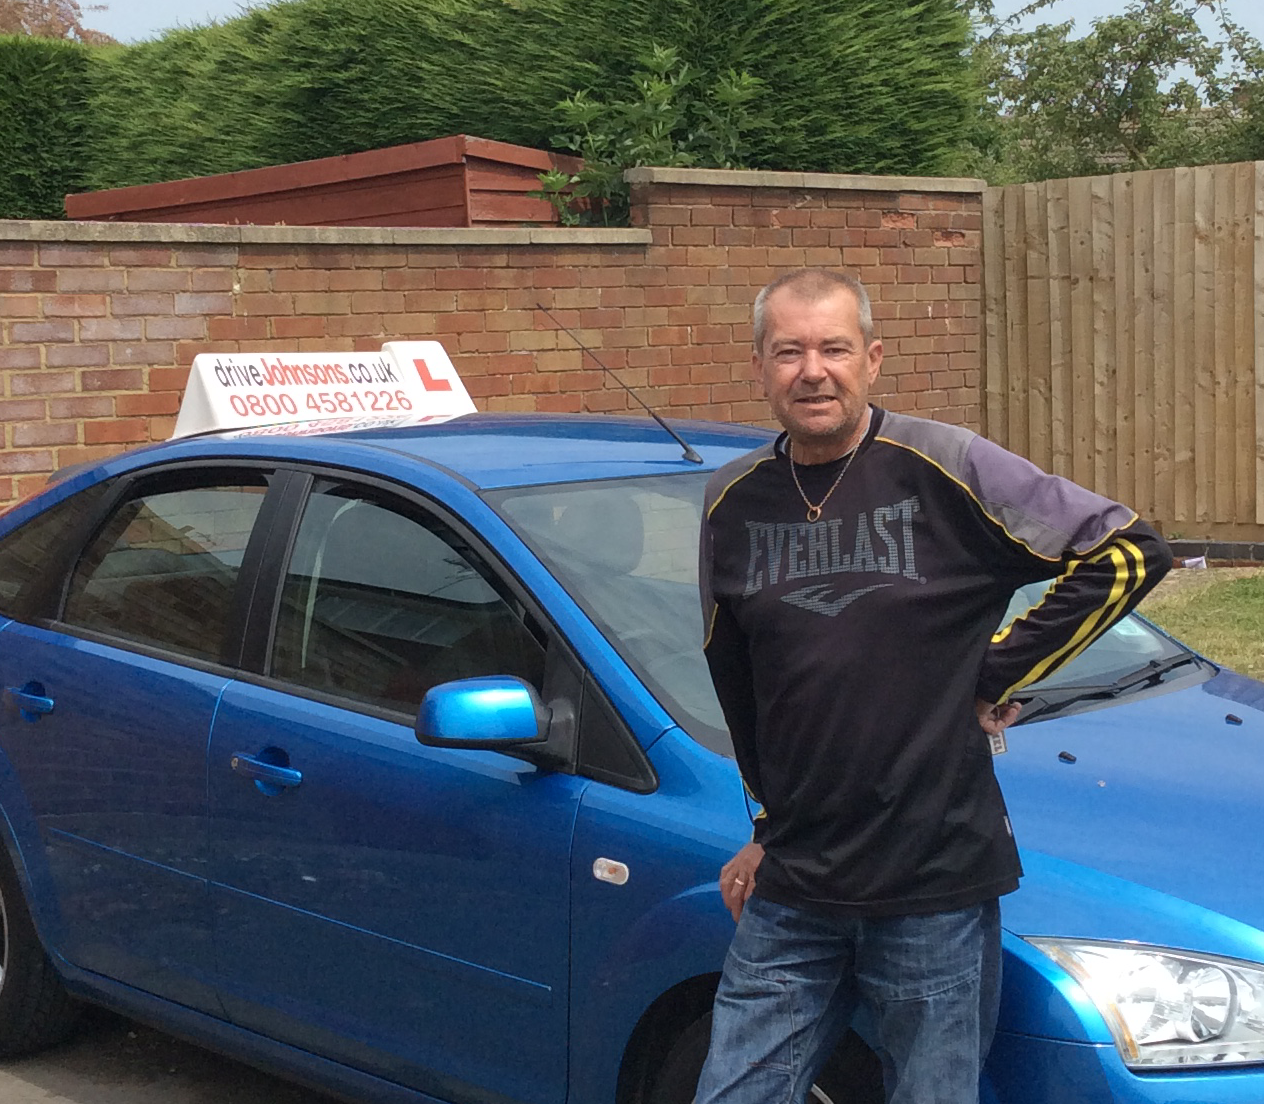 Chris Glazebrook instructor and car